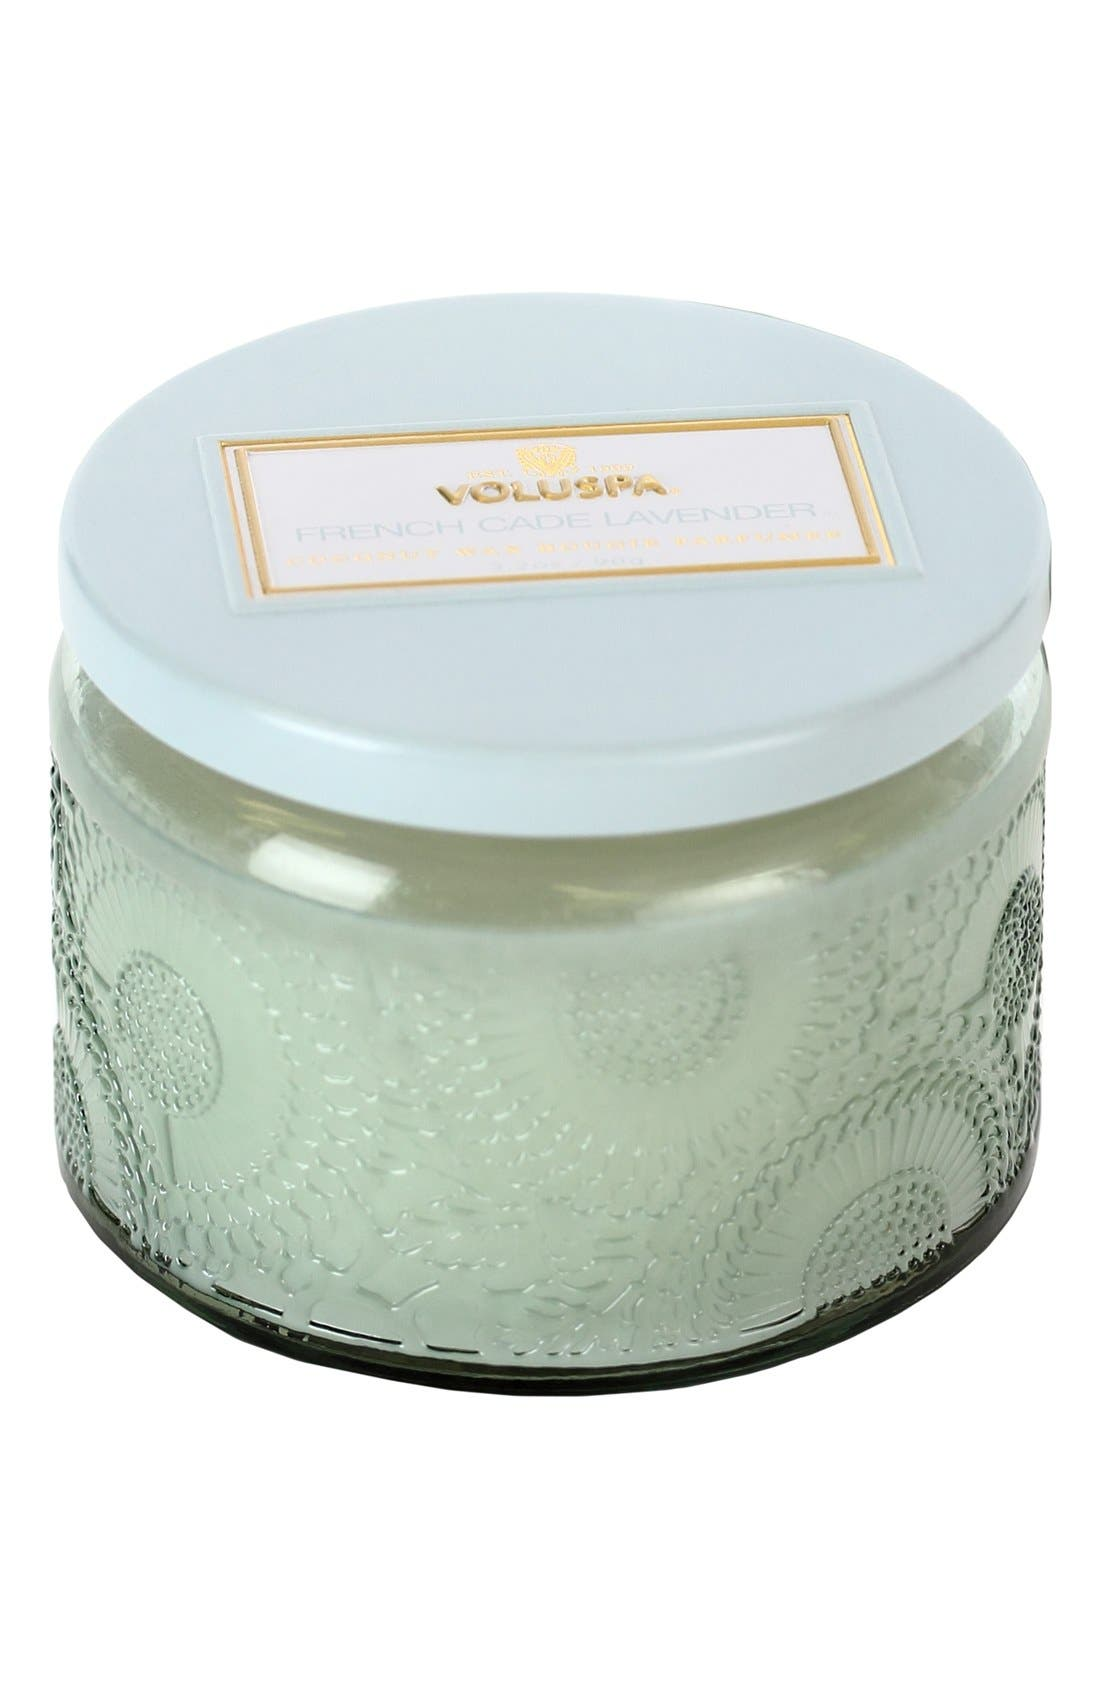 Alternate Image 1 Selected - Voluspa 'Japonica - French Cade Lavender' Petite Colored Jar Candle